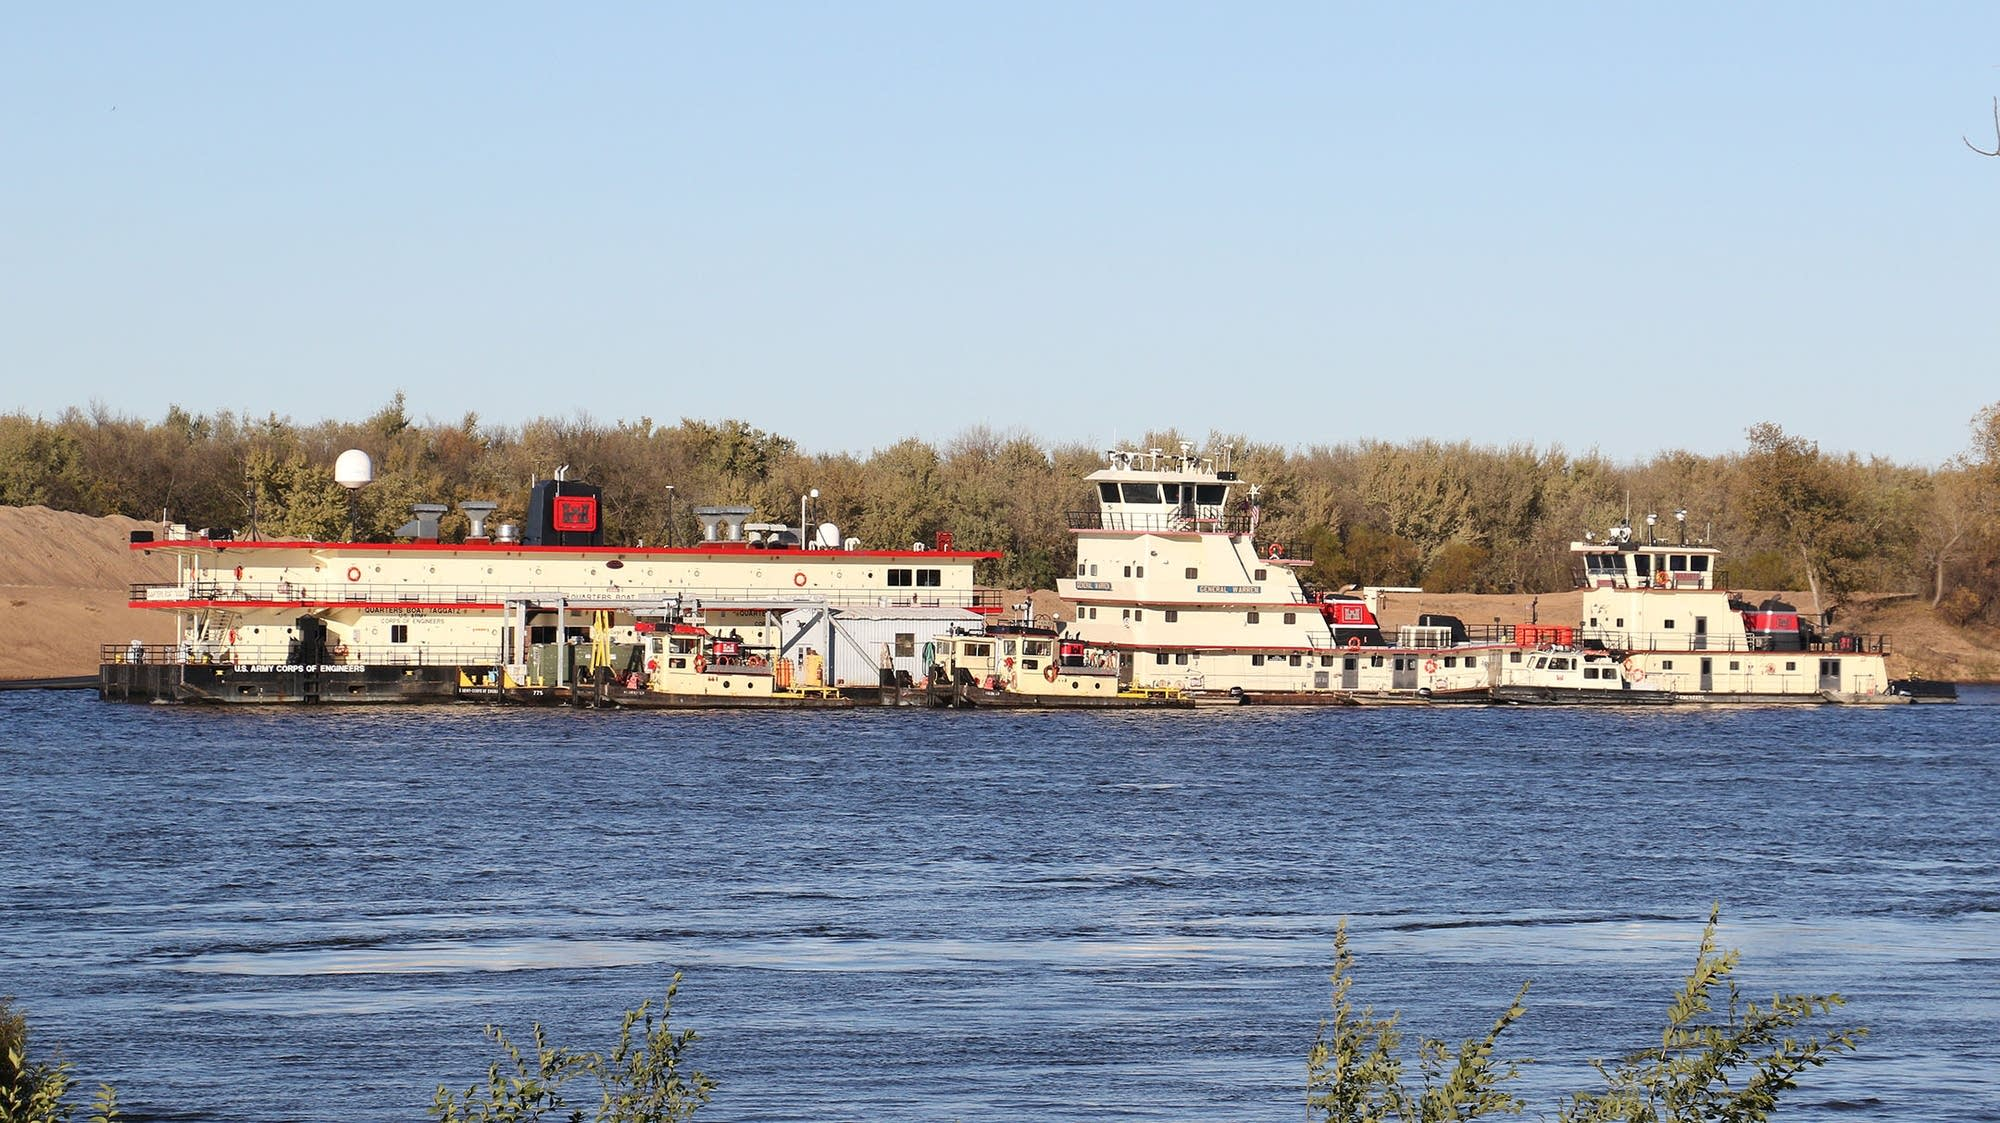 U.S. Army Corps of Engineers vessels are seen along the Mississippi River